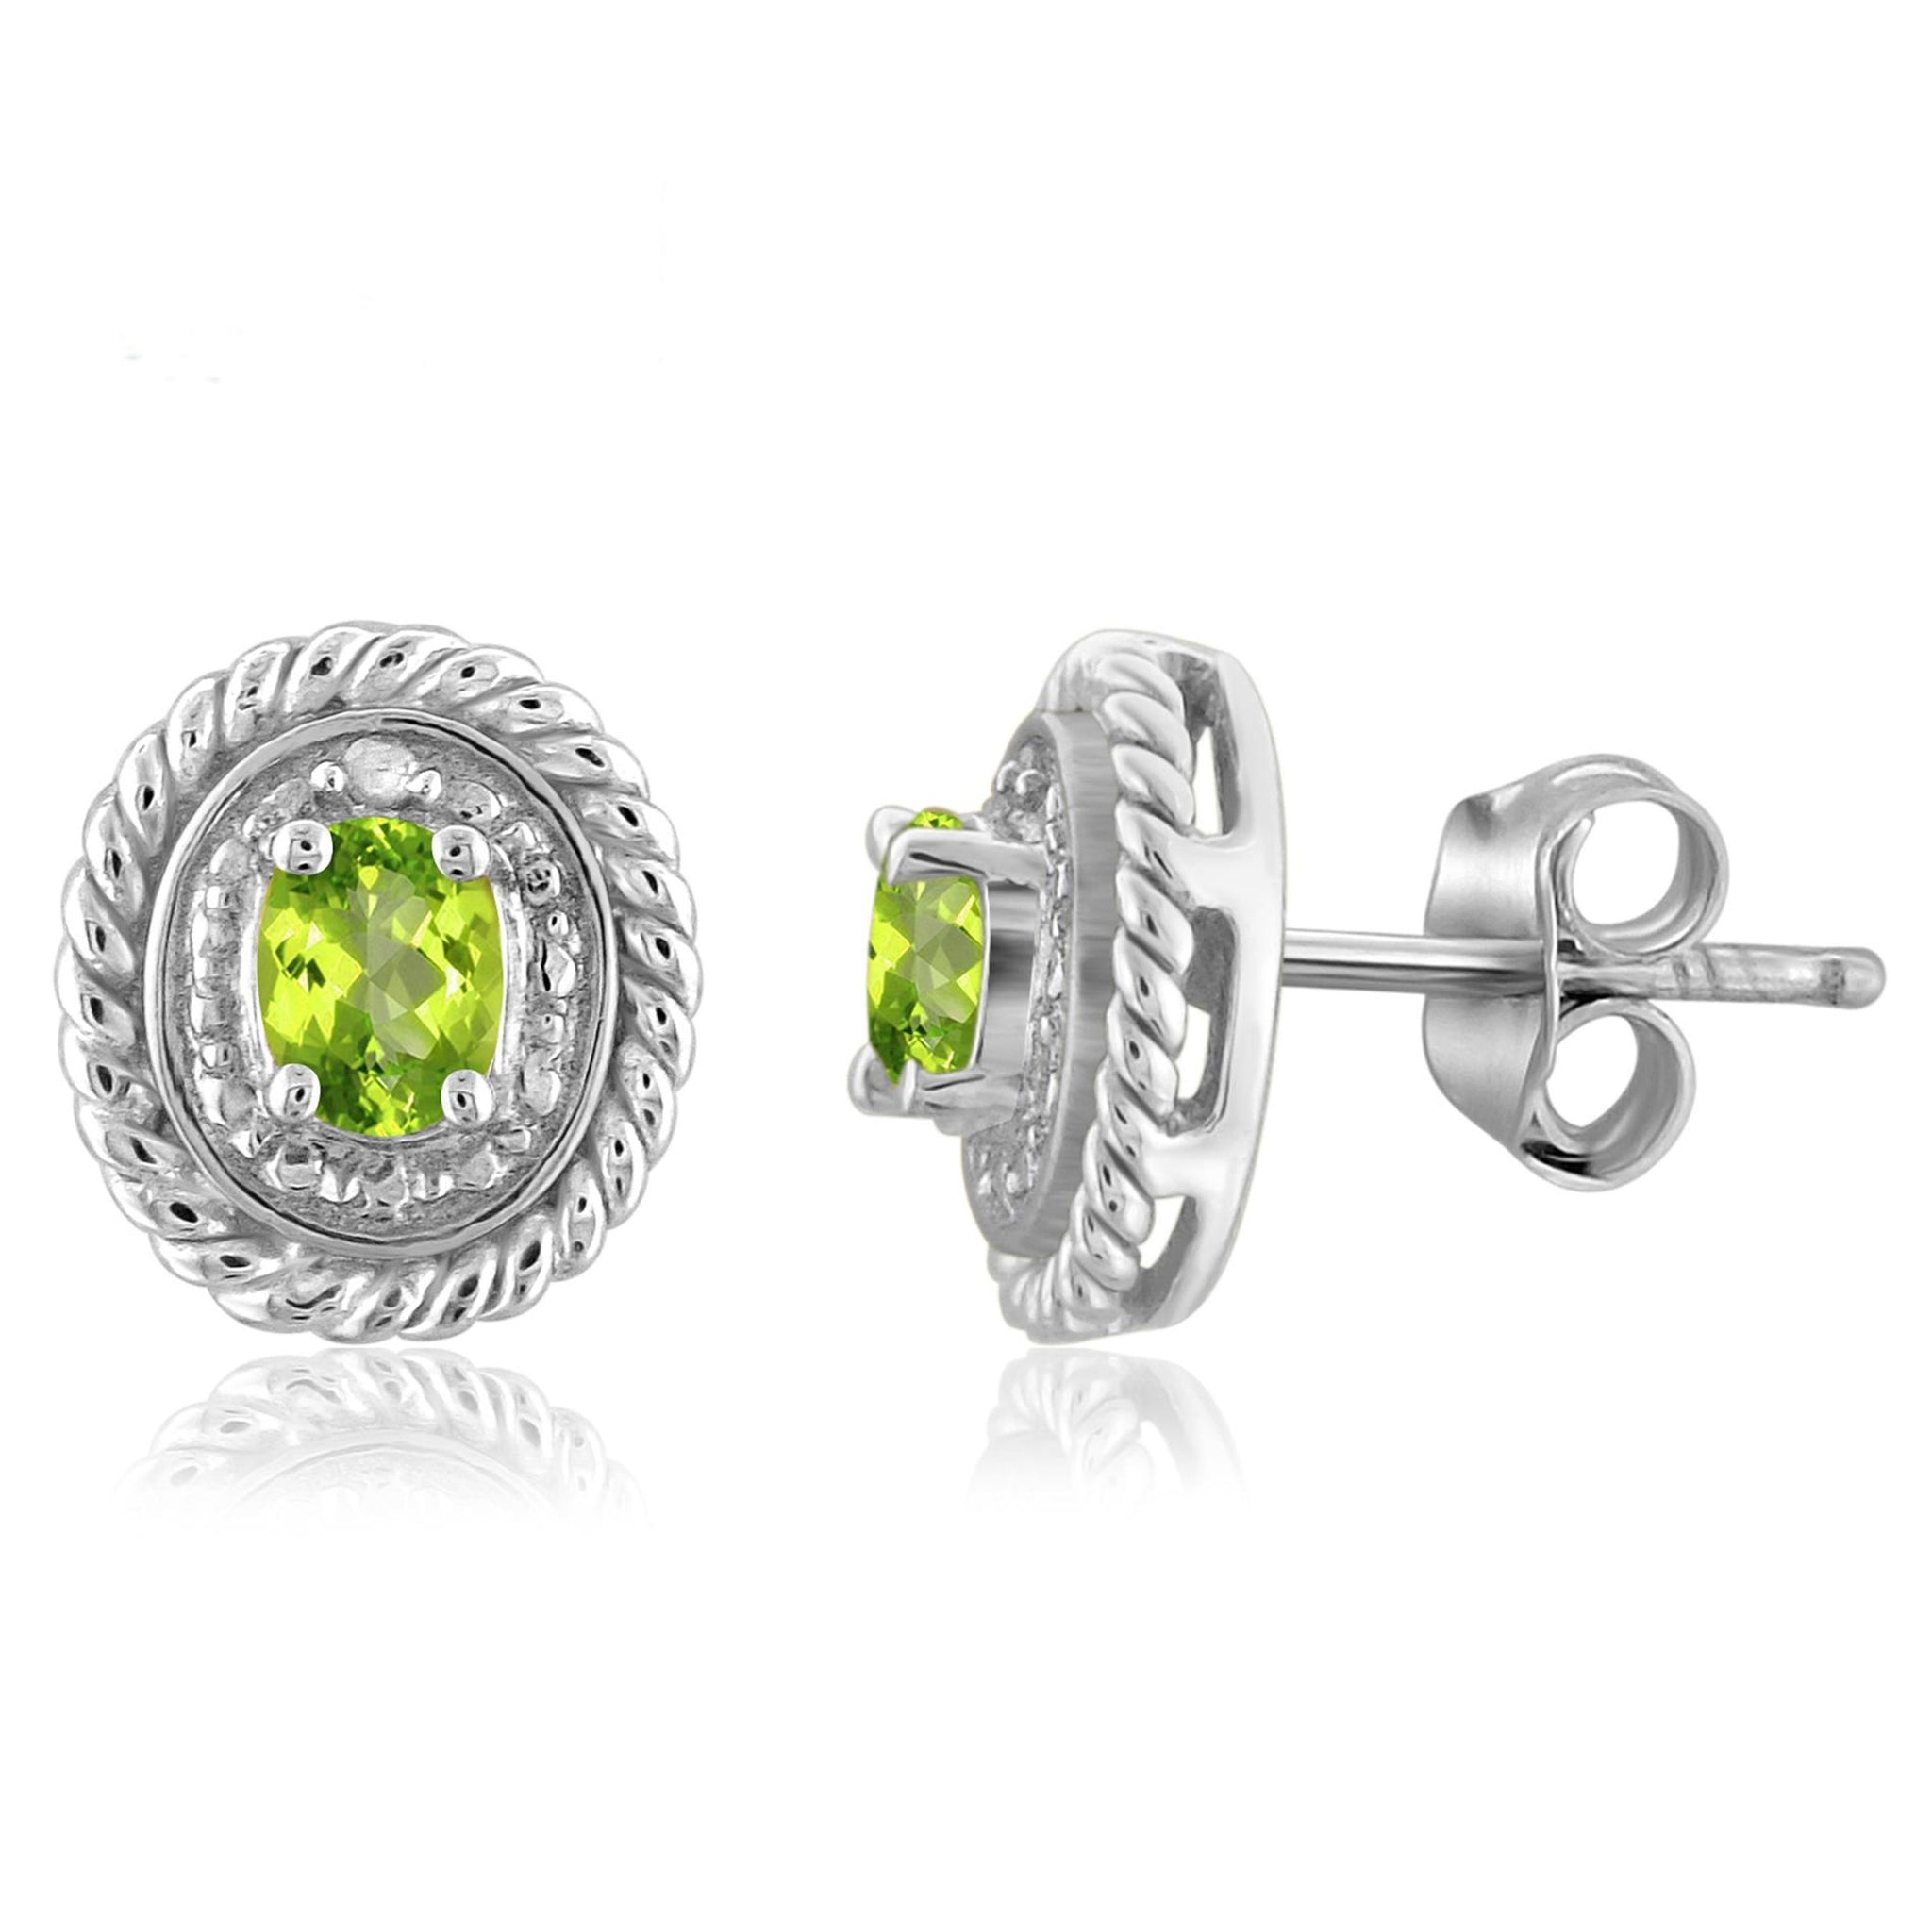 JewelonFire 1/3 Carat T.G.W. Peridot and White Diamond Accent Sterling Silver Stud Earrings - Assorted Colors